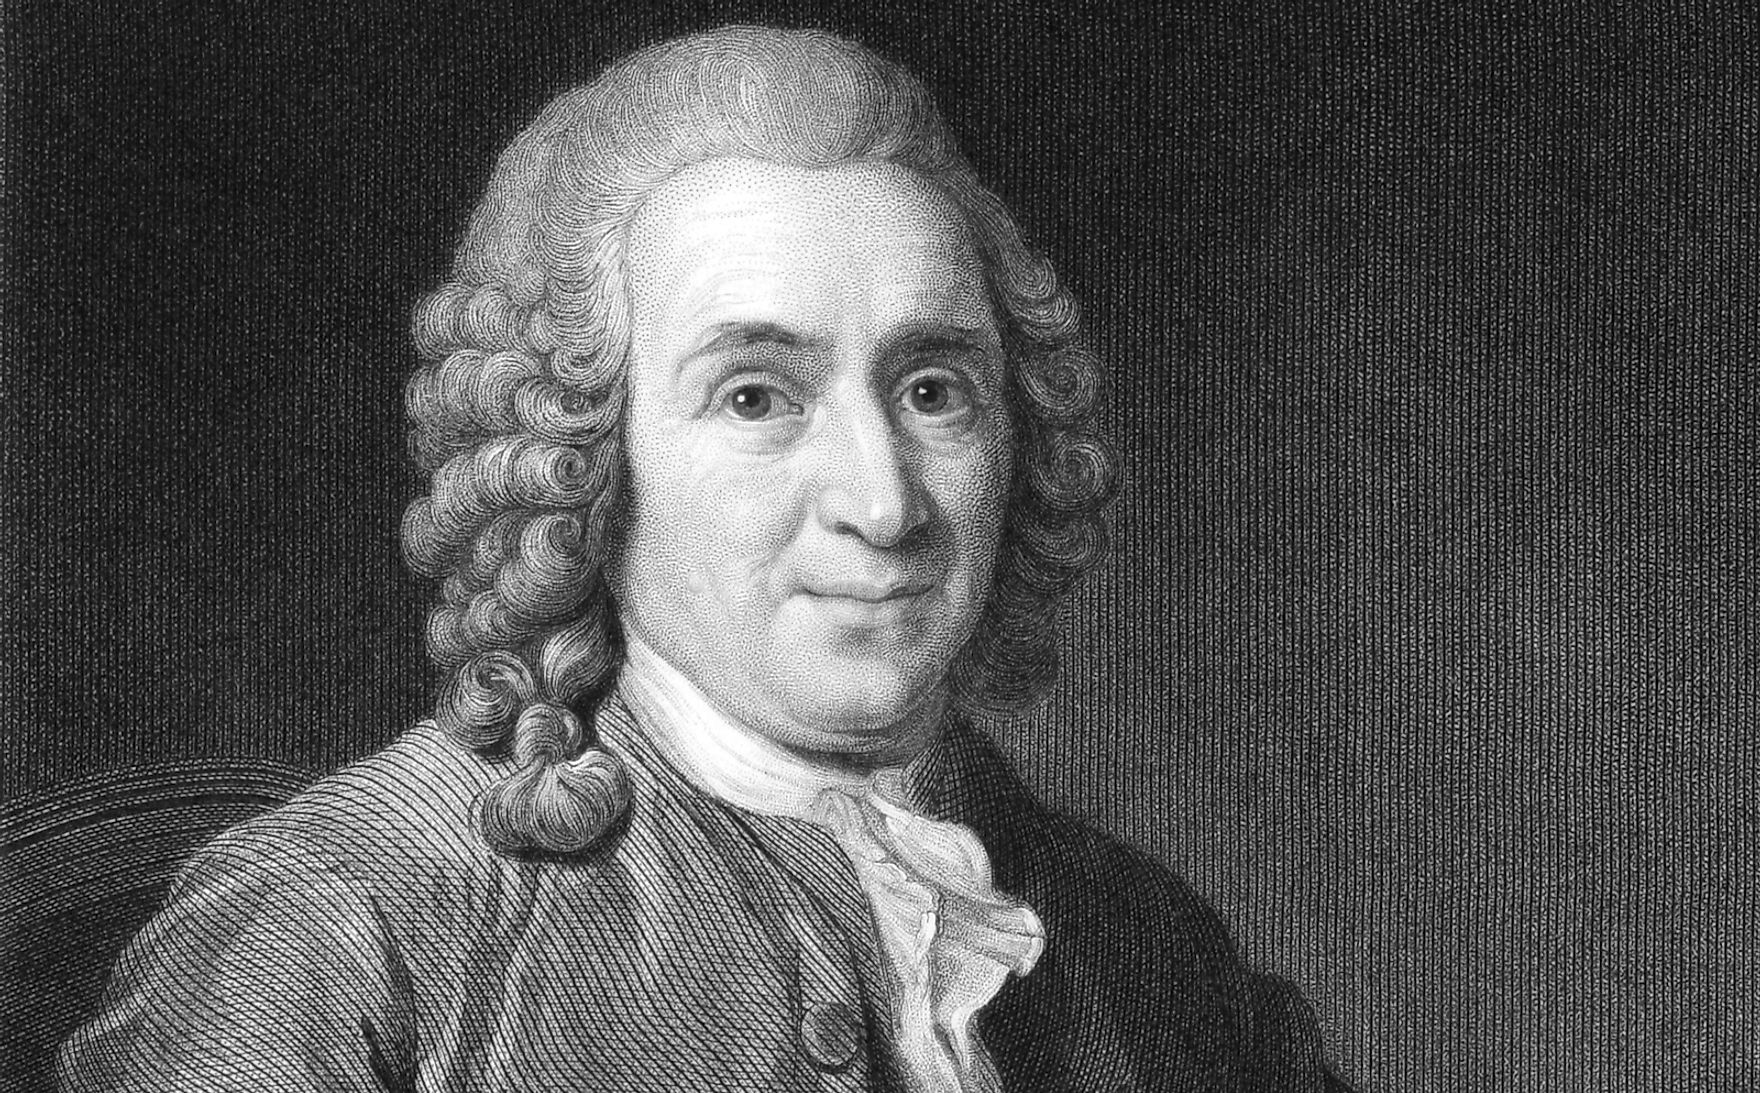 Carl Linnaeus, for whom the Linneaeus system of taxonomy is named after.